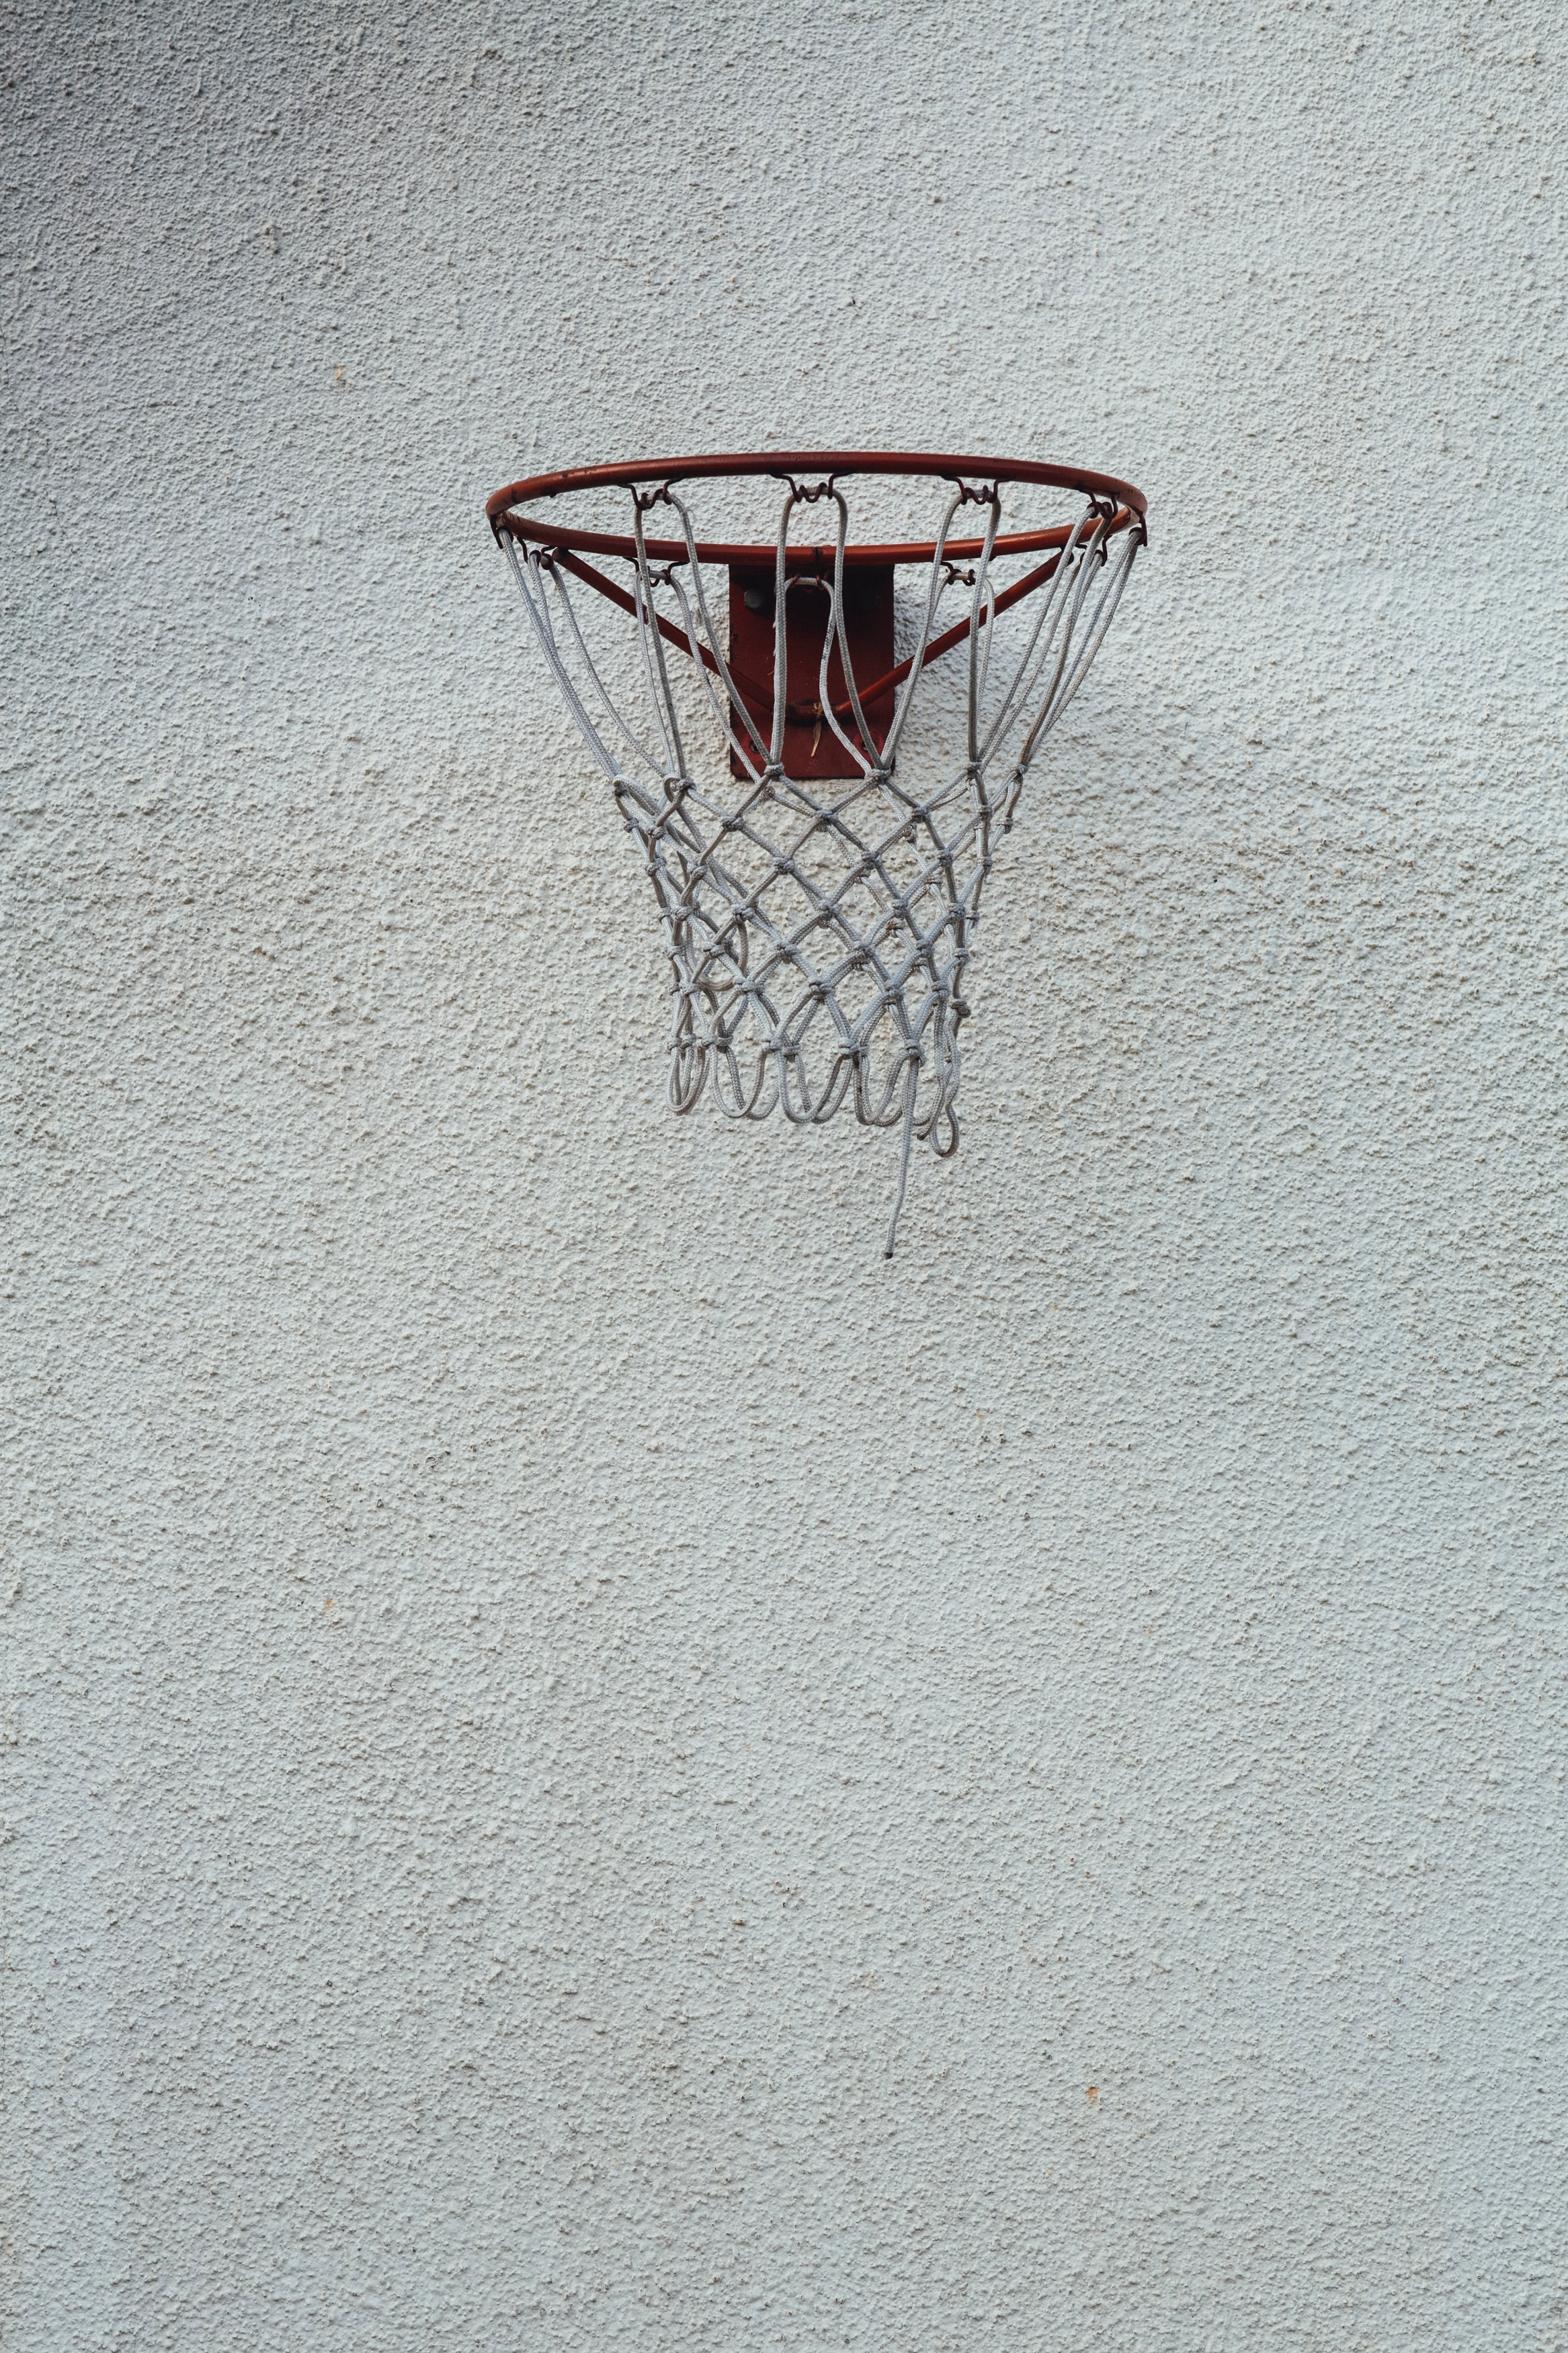 106114 Screensavers and Wallpapers Basketball for phone. Download Miscellanea, Miscellaneous, Basketball, Basketball Hoop, Basketball Ring, Grid, Wall pictures for free